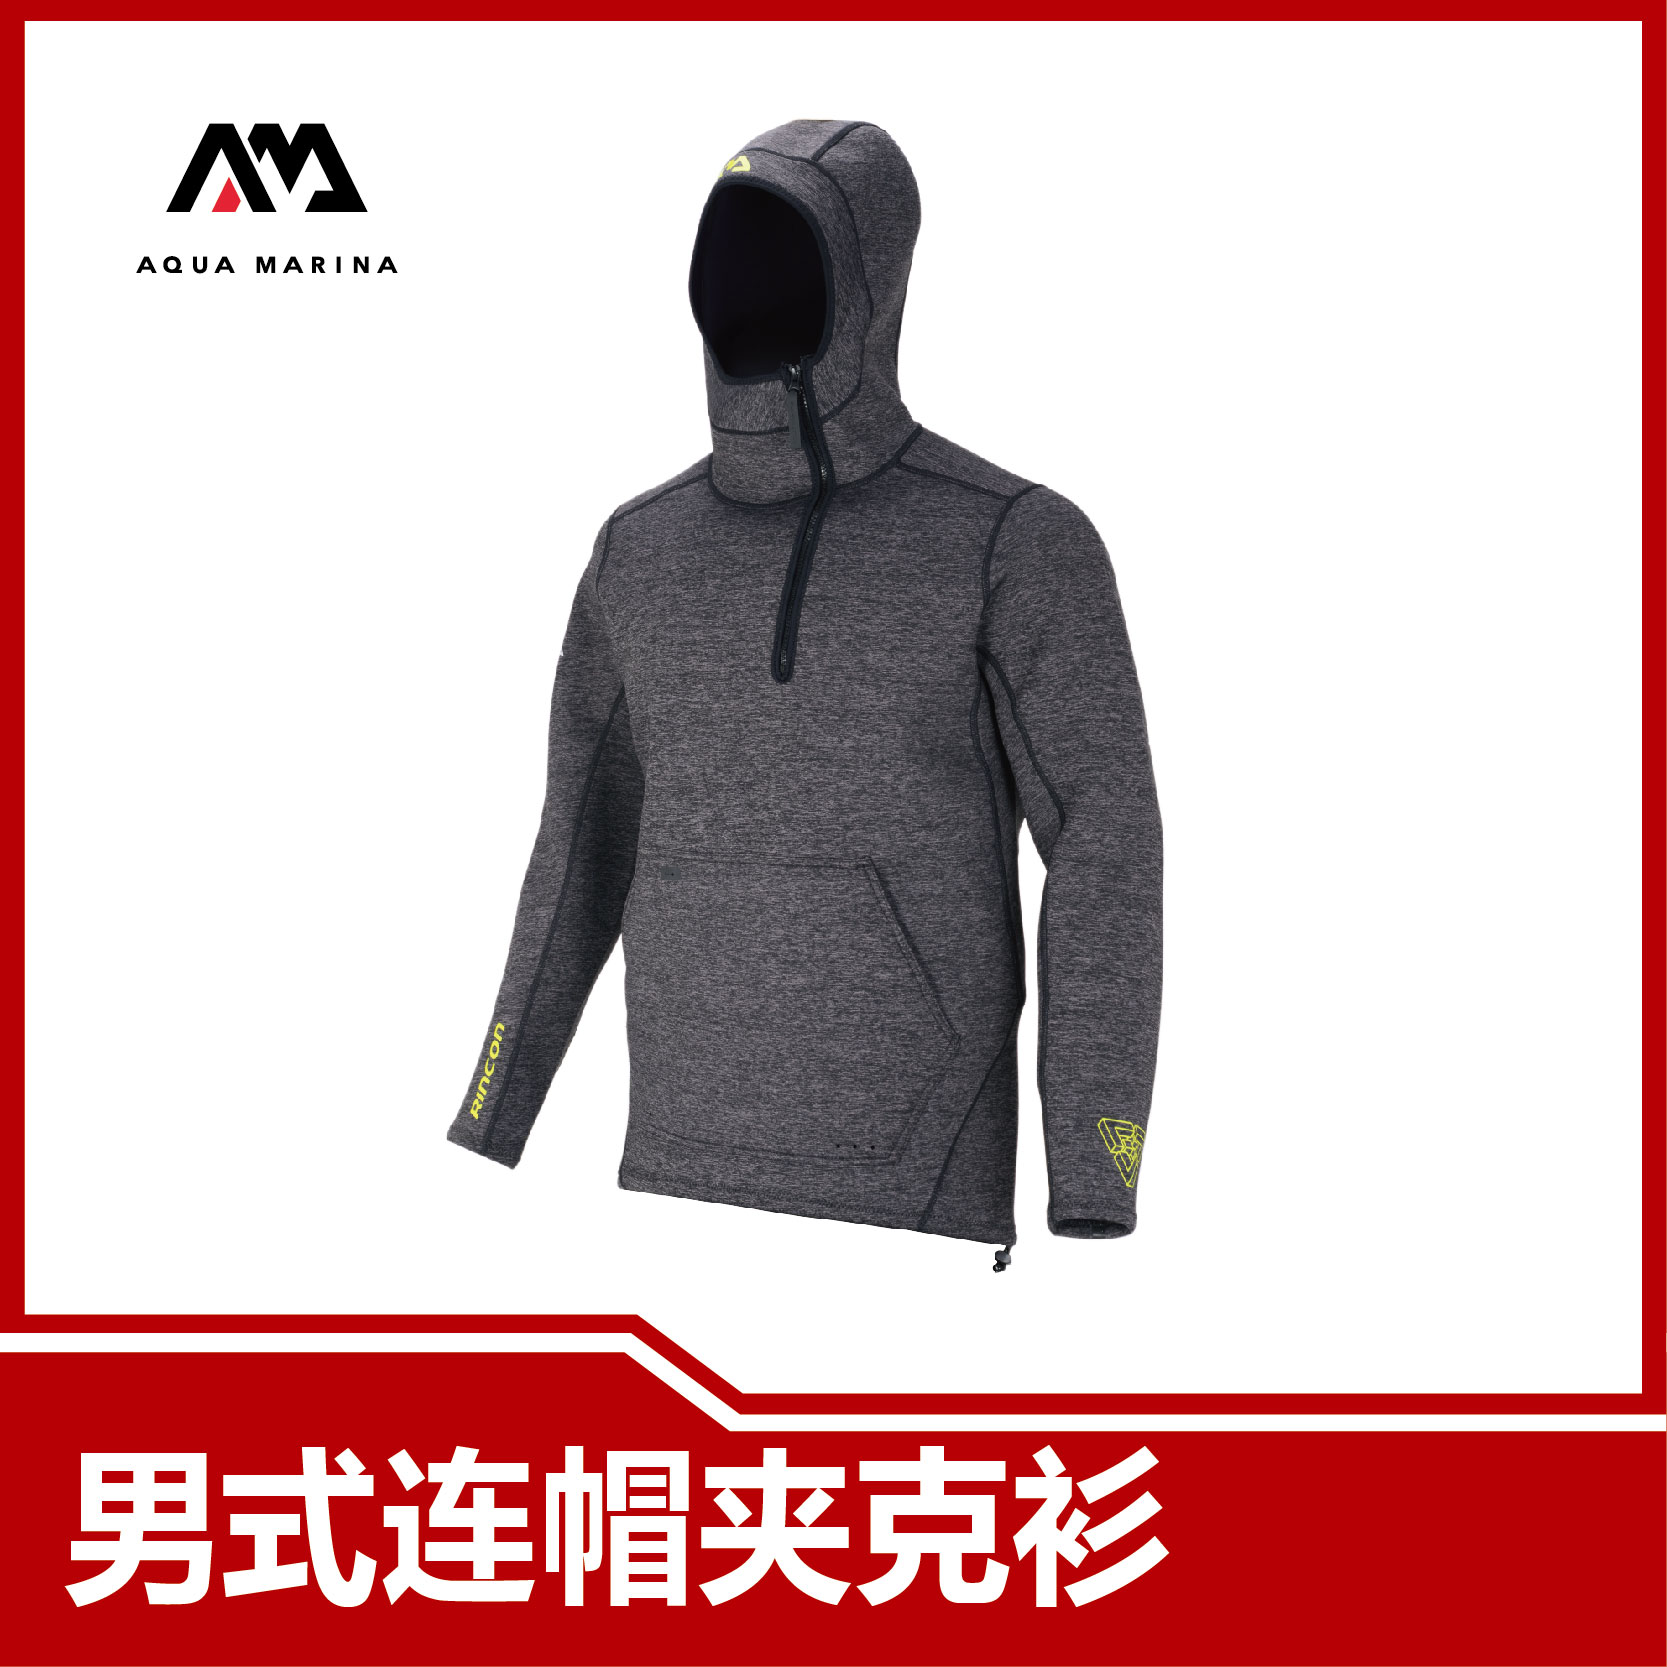 AquaMarina Le Rowing Men's Paddle Board Water Sports Wear Hooded Jacket Dive warm and cold suit.